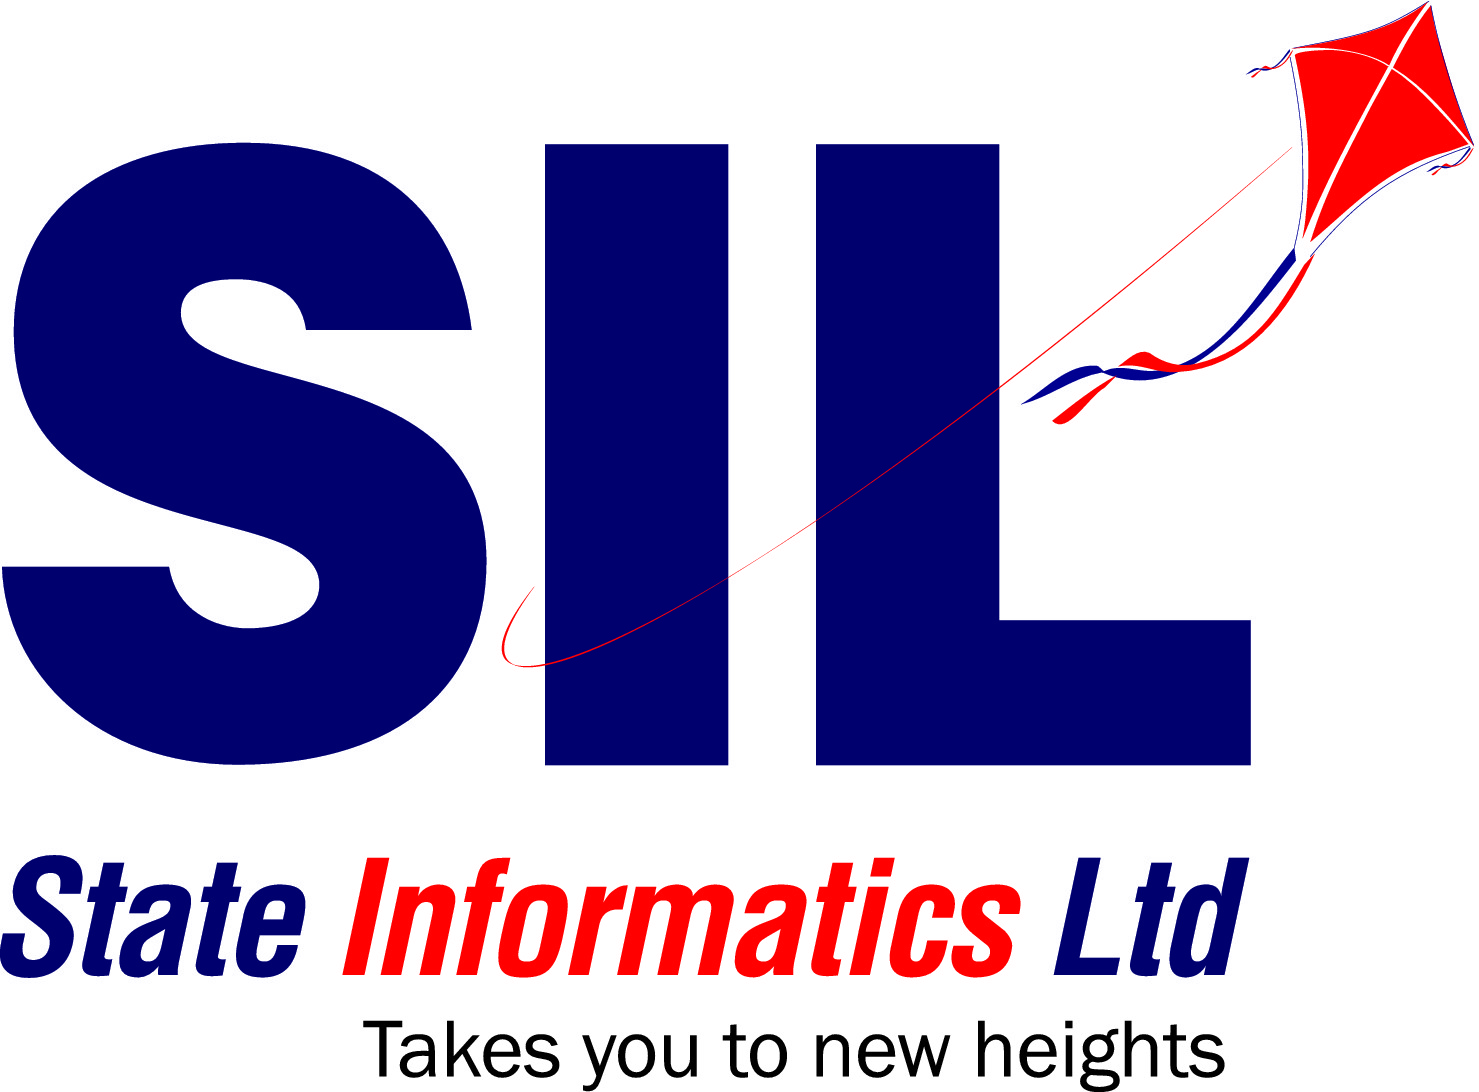 sil-logo_takes-you-to-new-heights.jpg